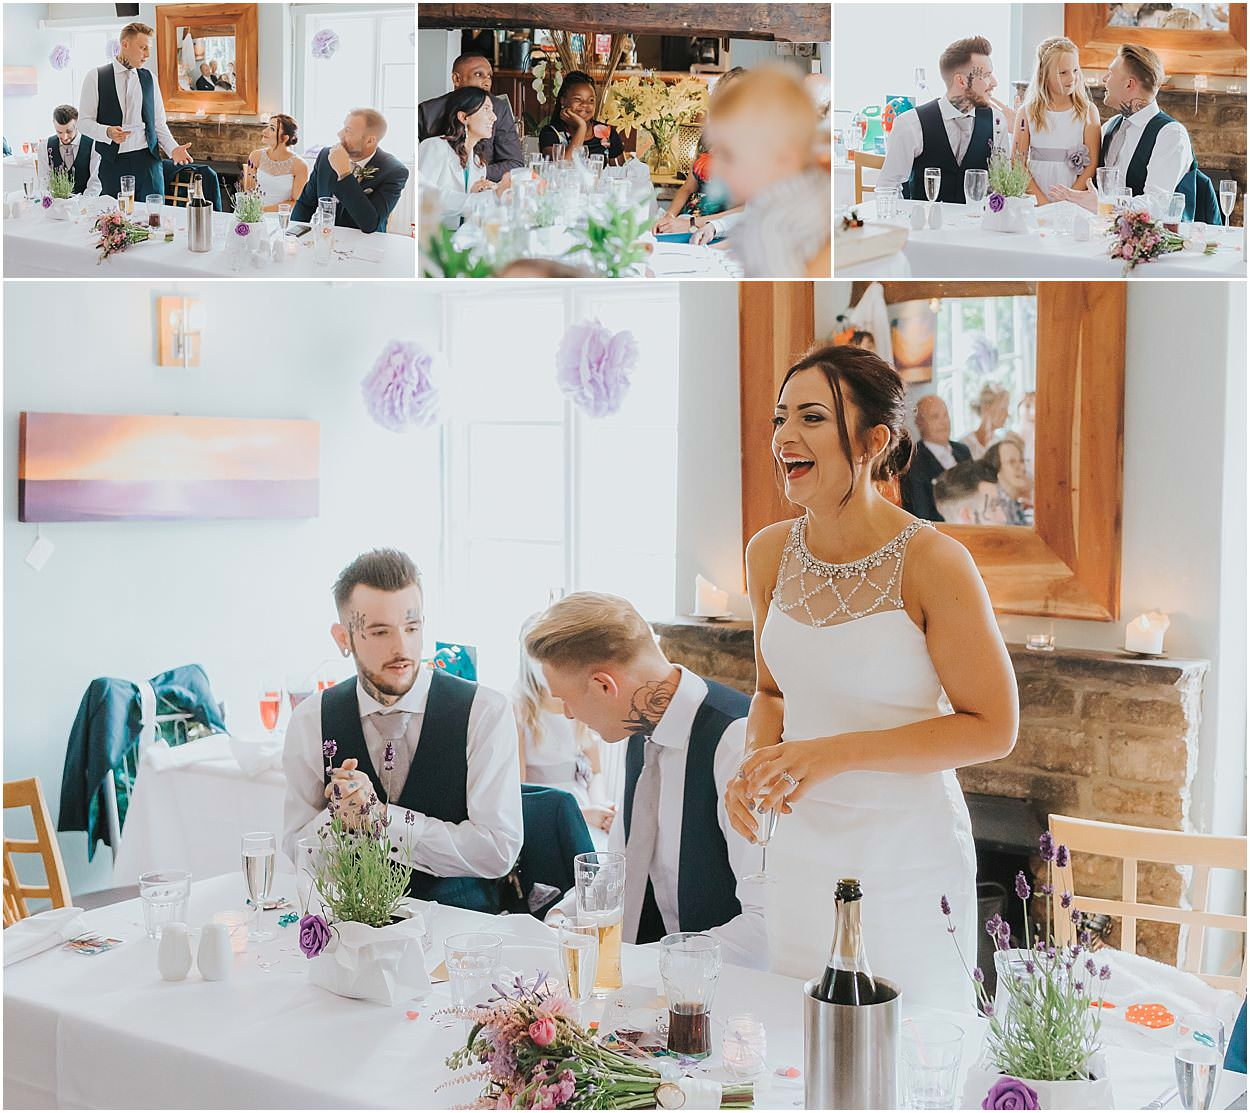 Lincolnshire photography speeches from a wedding, including the bride, groom, best man and children